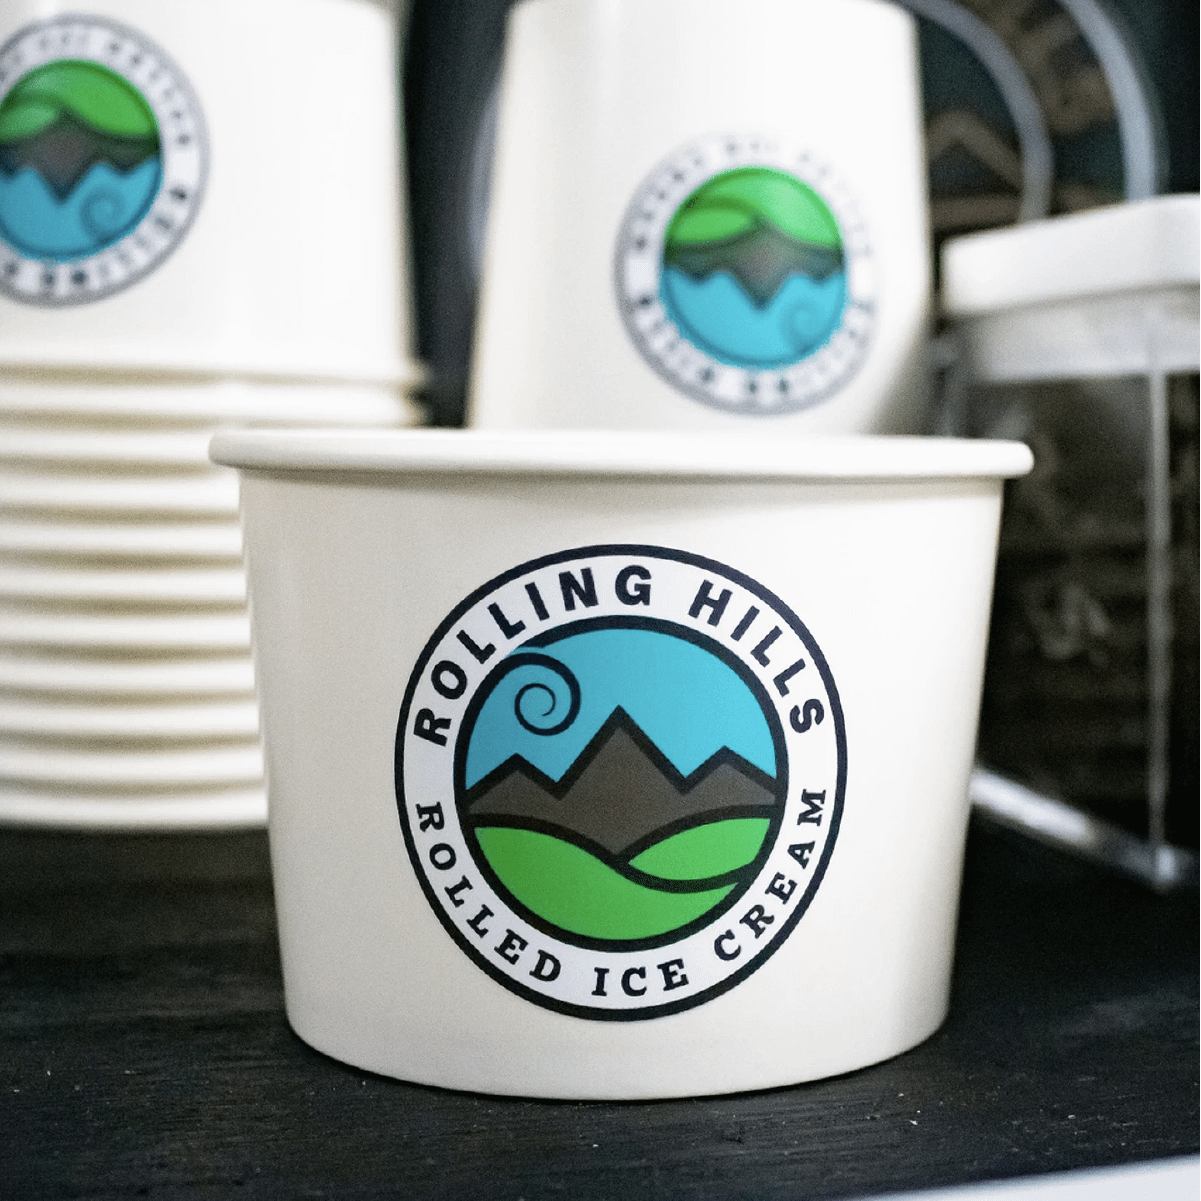 Rolling Hills Rolled Ice Cream logo on ice cream cups